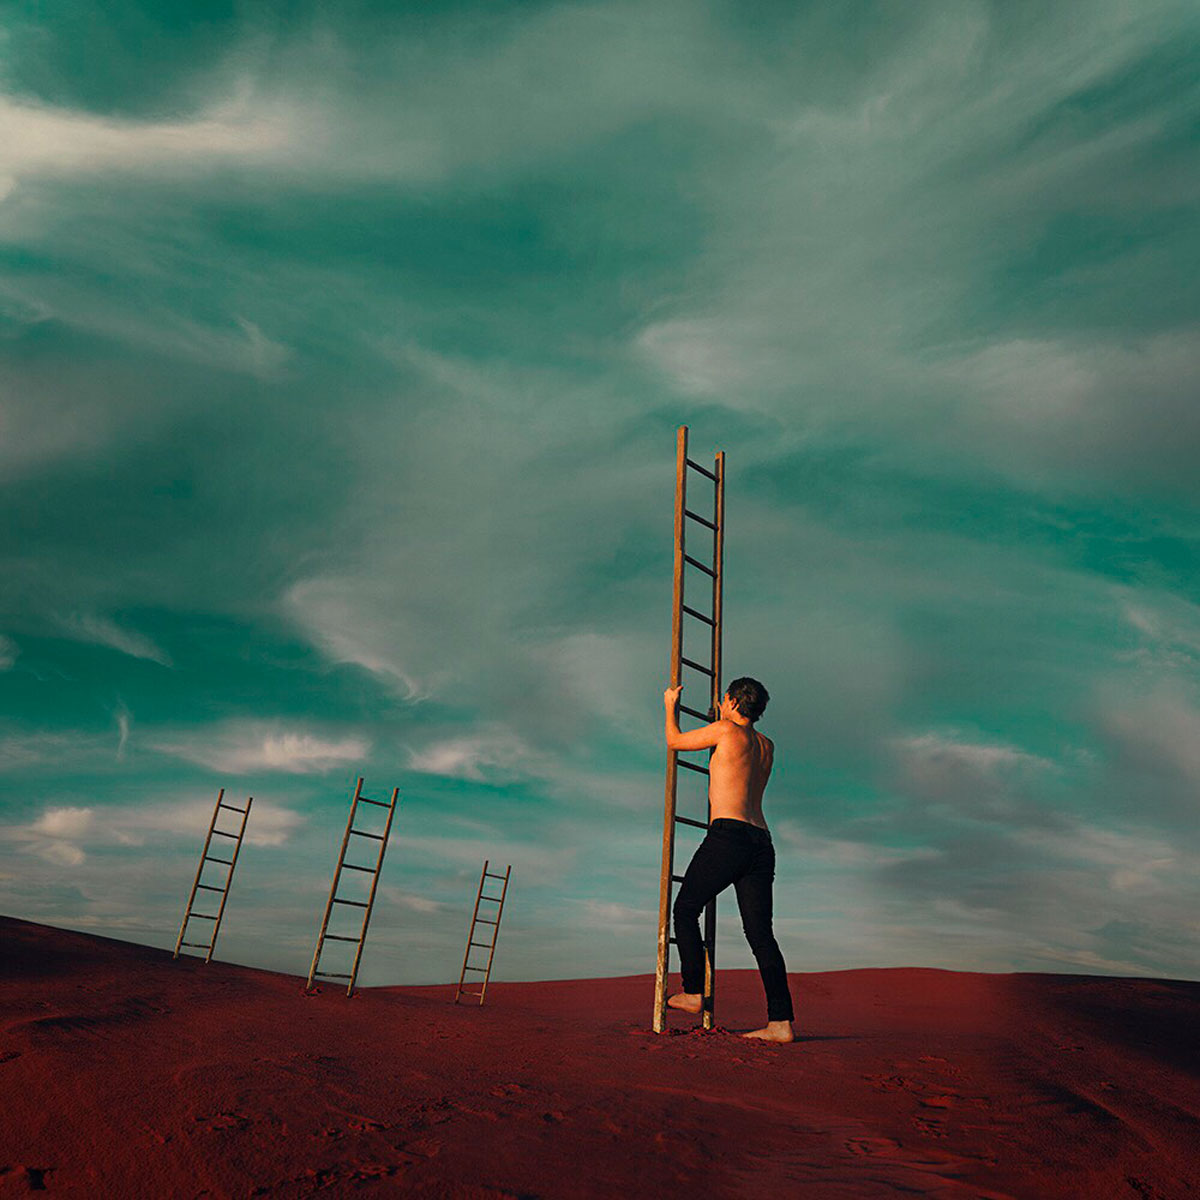 Nathan Milner concept photography digital art image of man climbing ladder into clouds